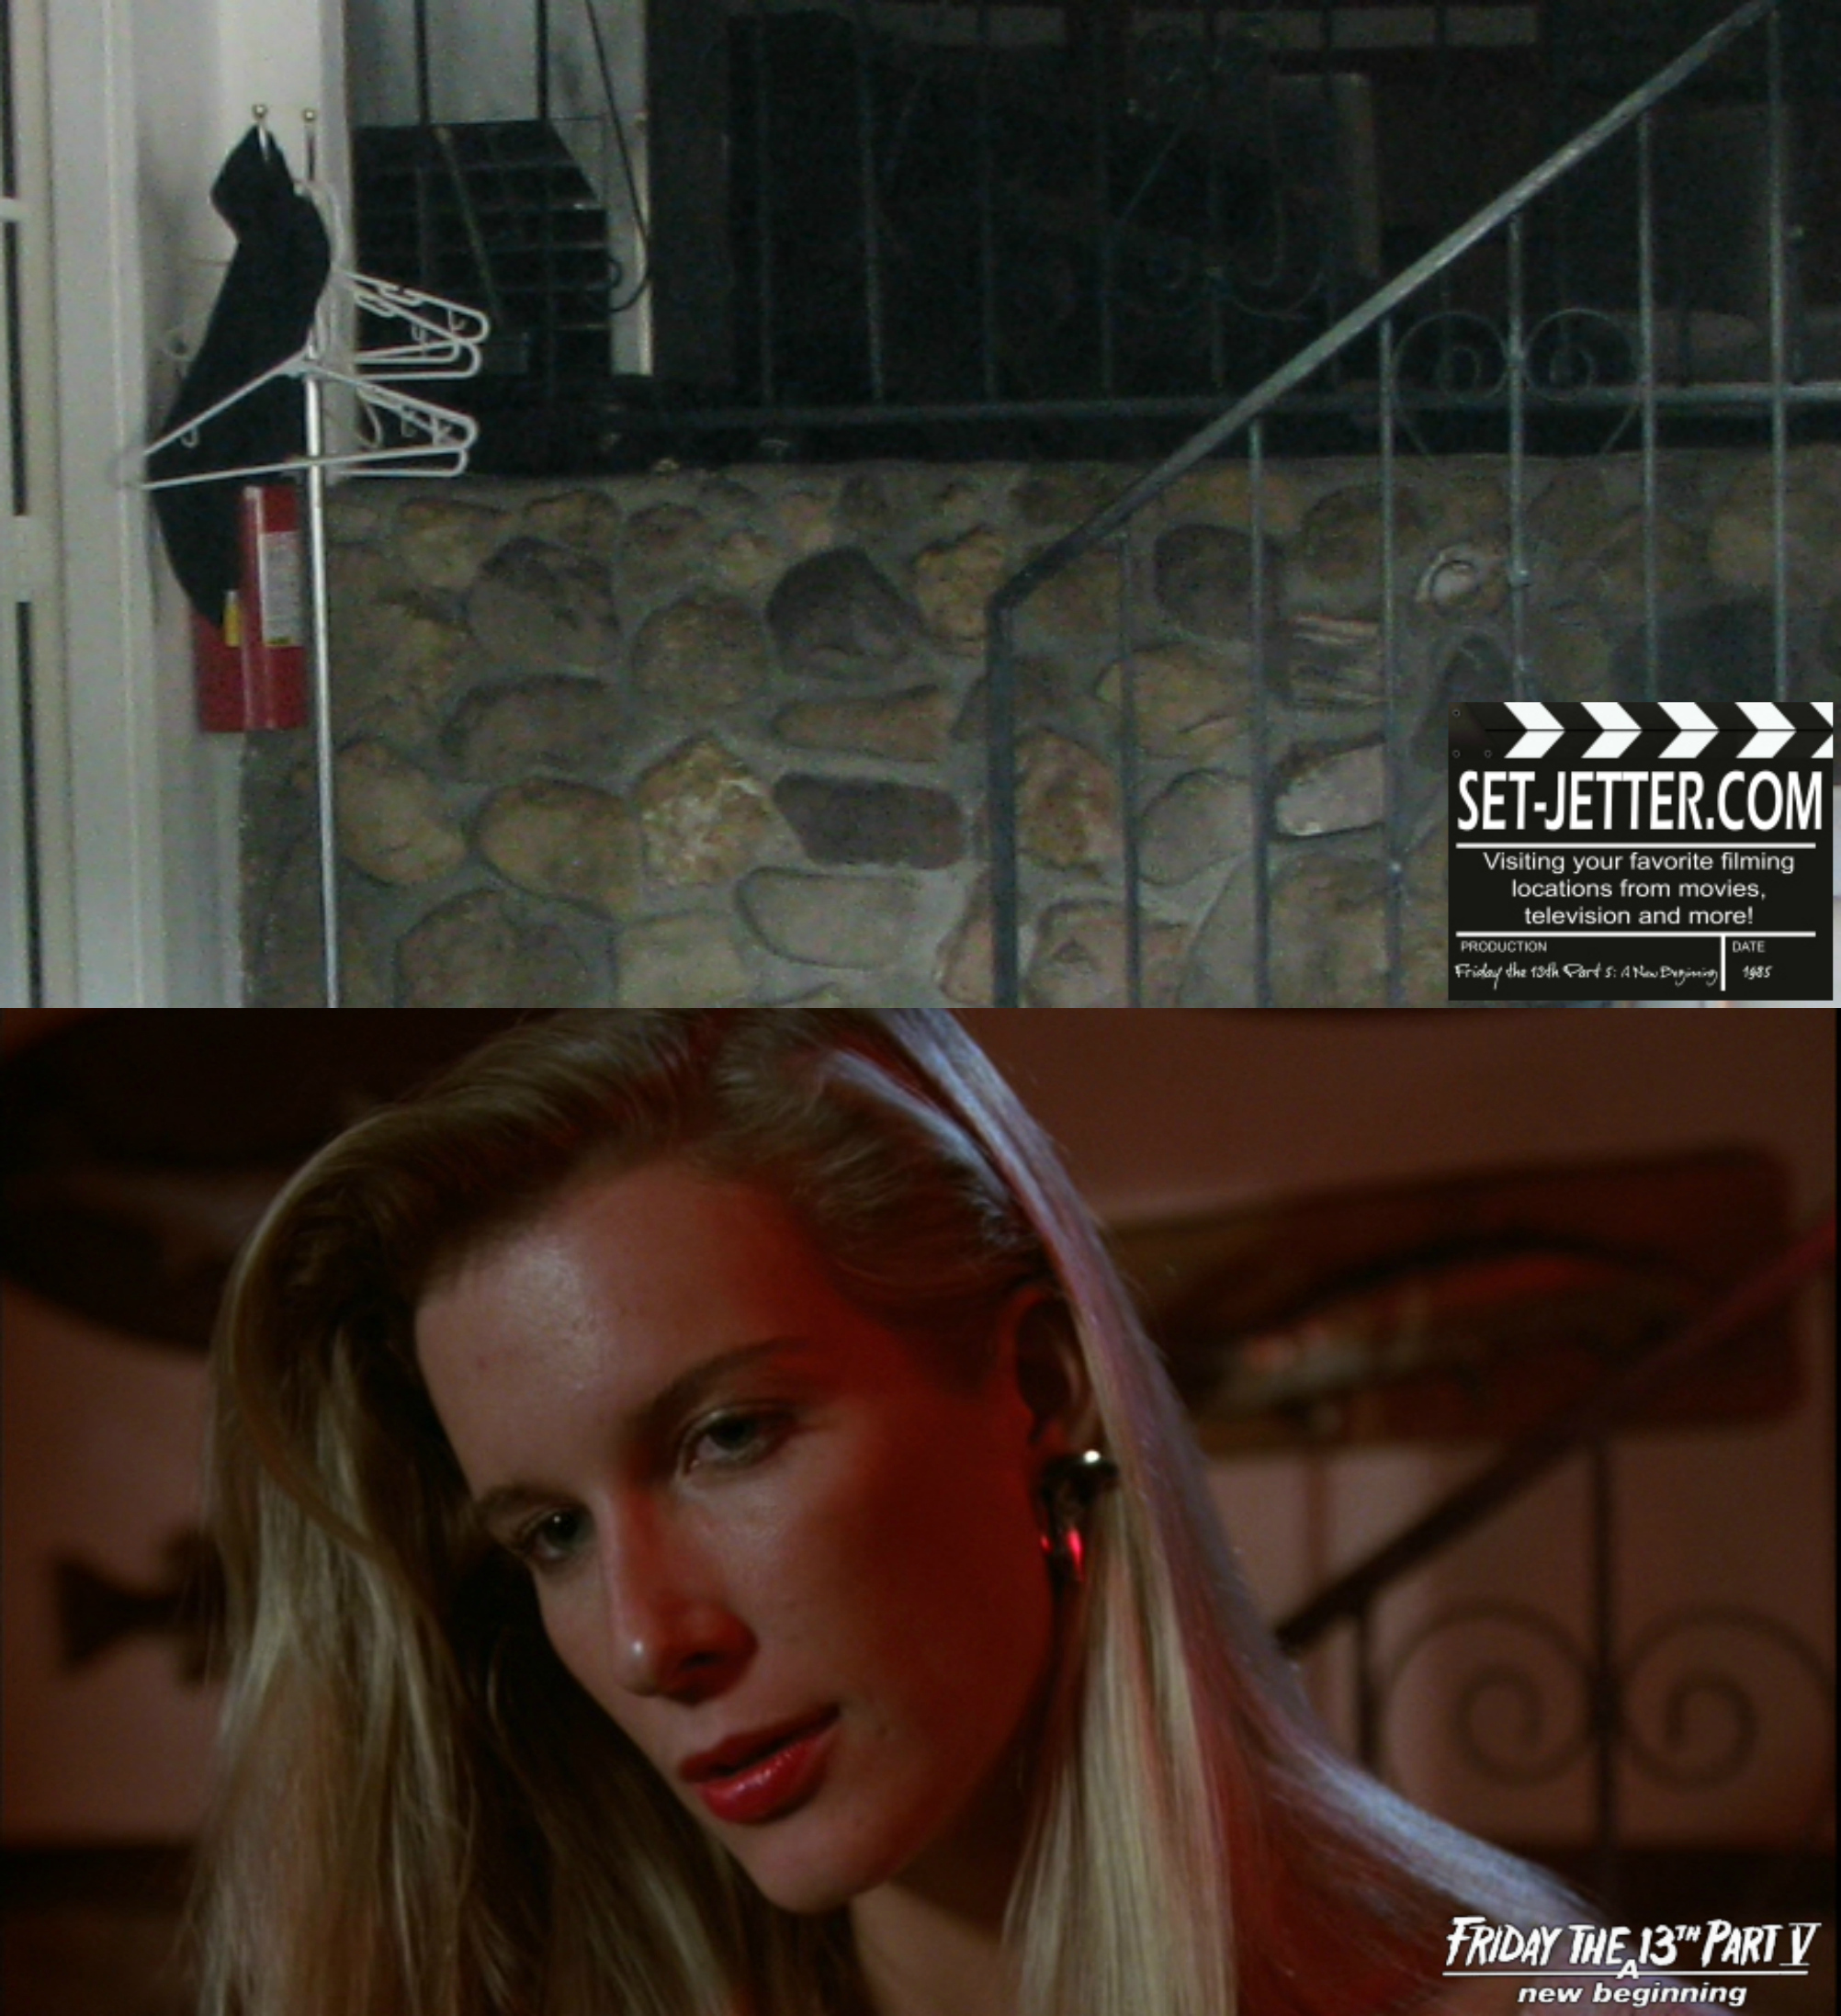 Friday the 13th Part V comparison 13.jpg